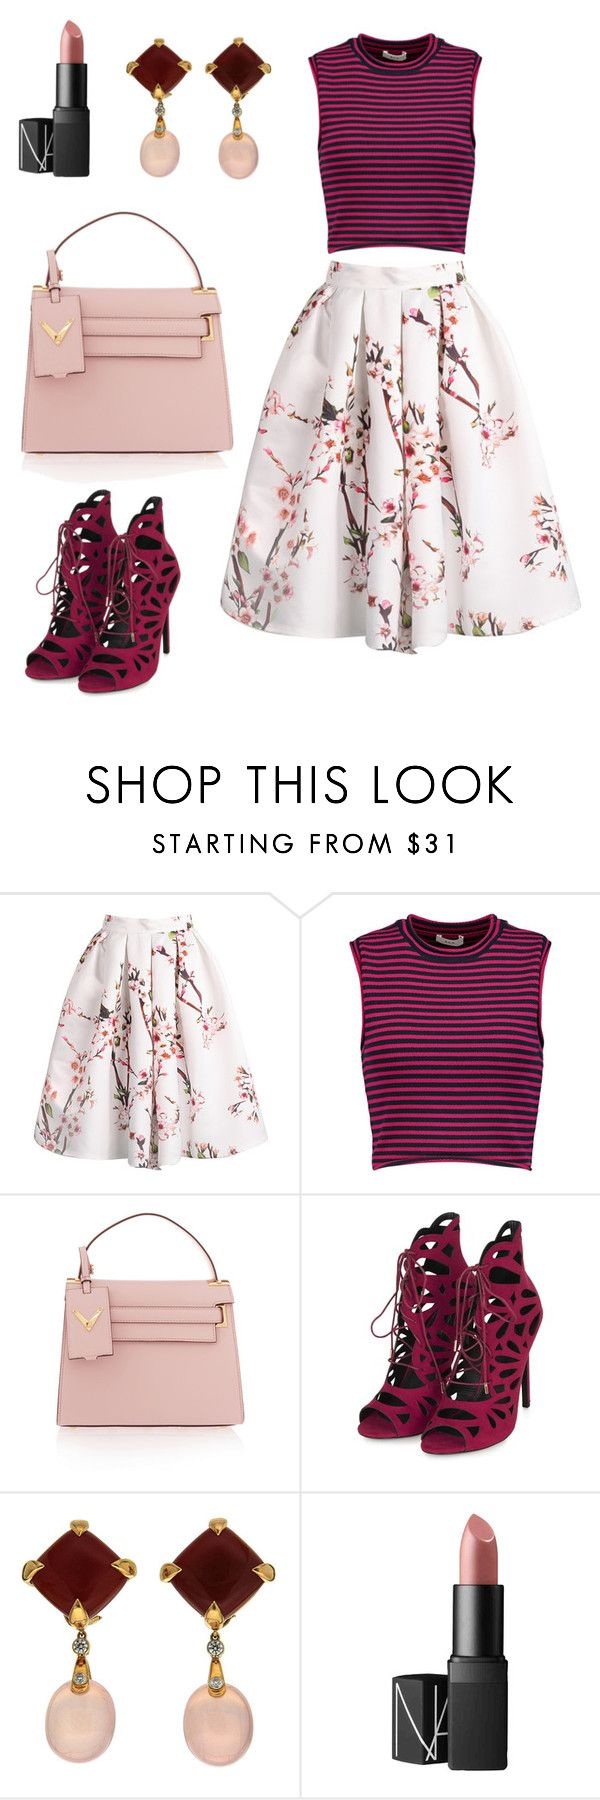 """Mixed patterns #1"" by tinehjorth ❤ liked on Polyvore featuring A.L.C., Valentino, Topshop, Valentin Magro, NARS Cosmetics and patternmixing"